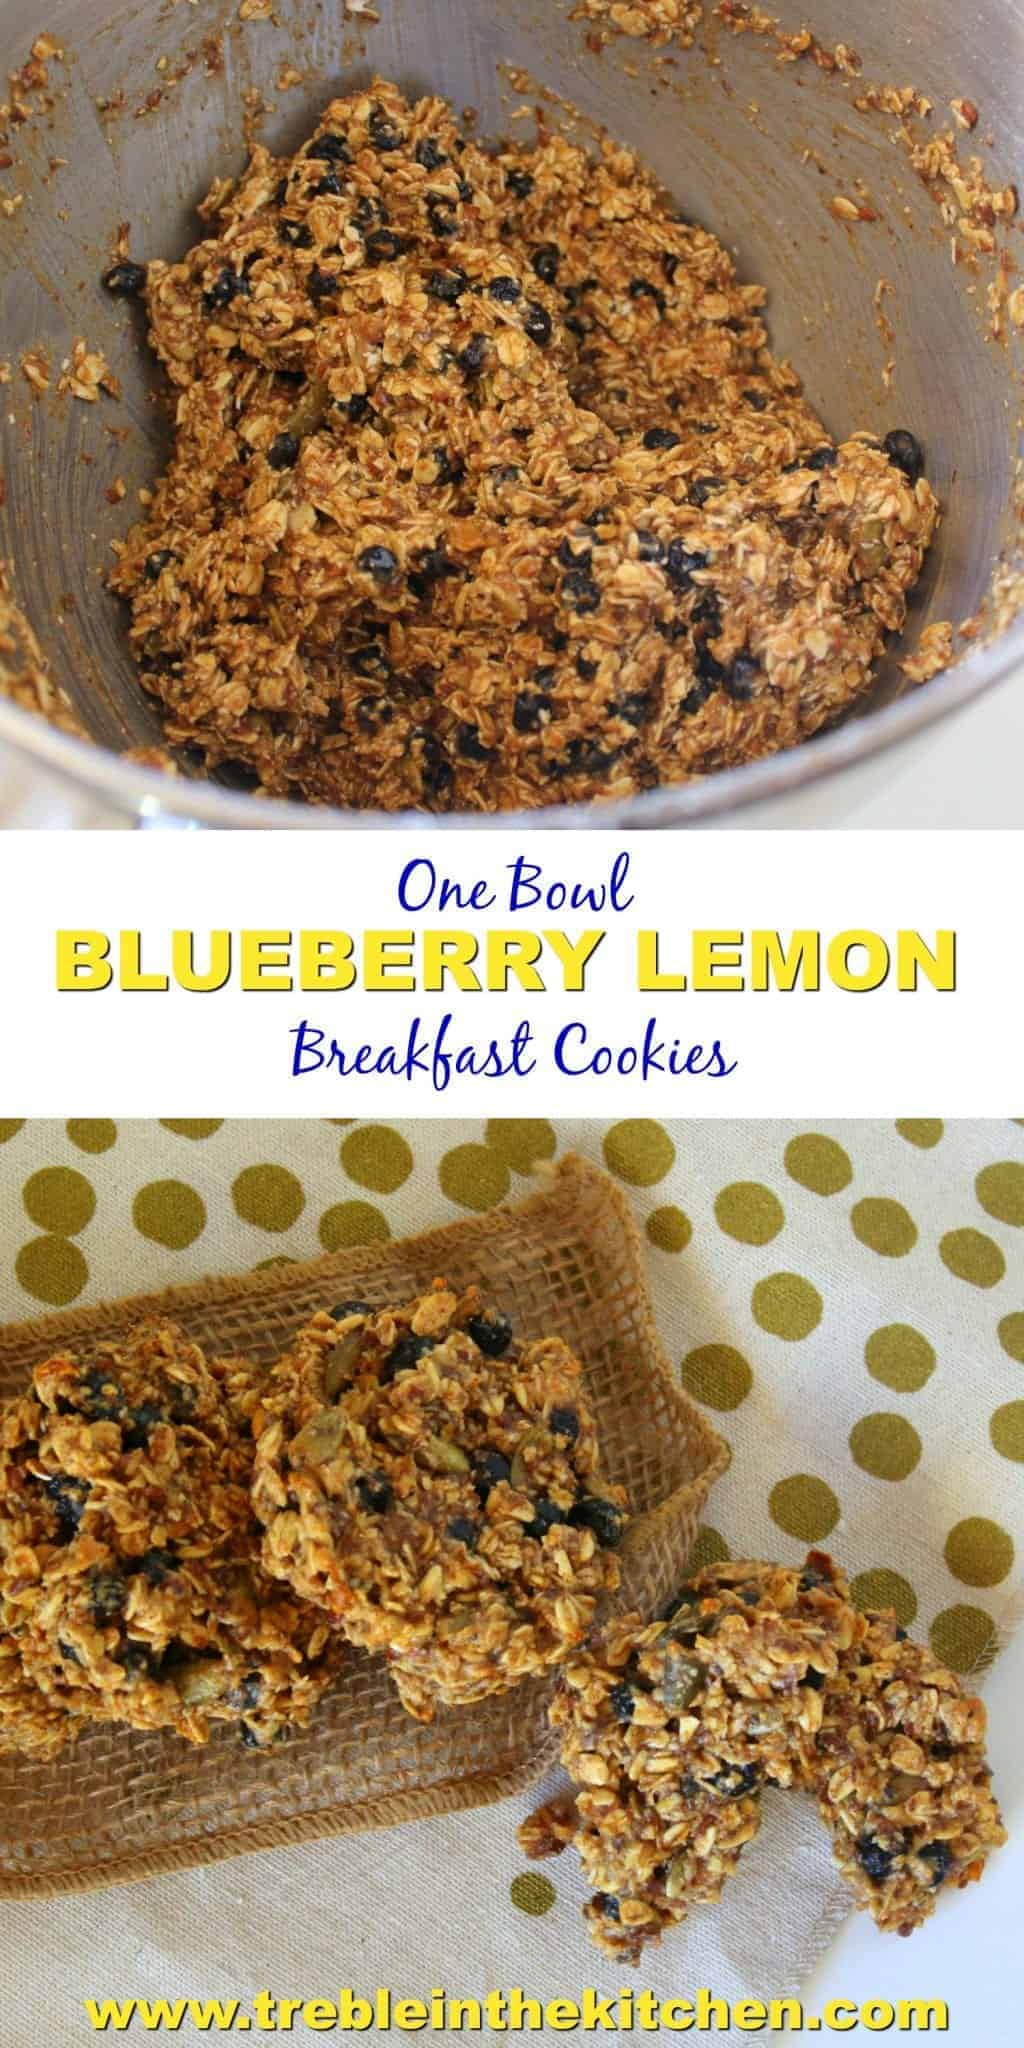 One Bowl Blueberry Lemon Breakfast Cookies from Treble in the Kitchen